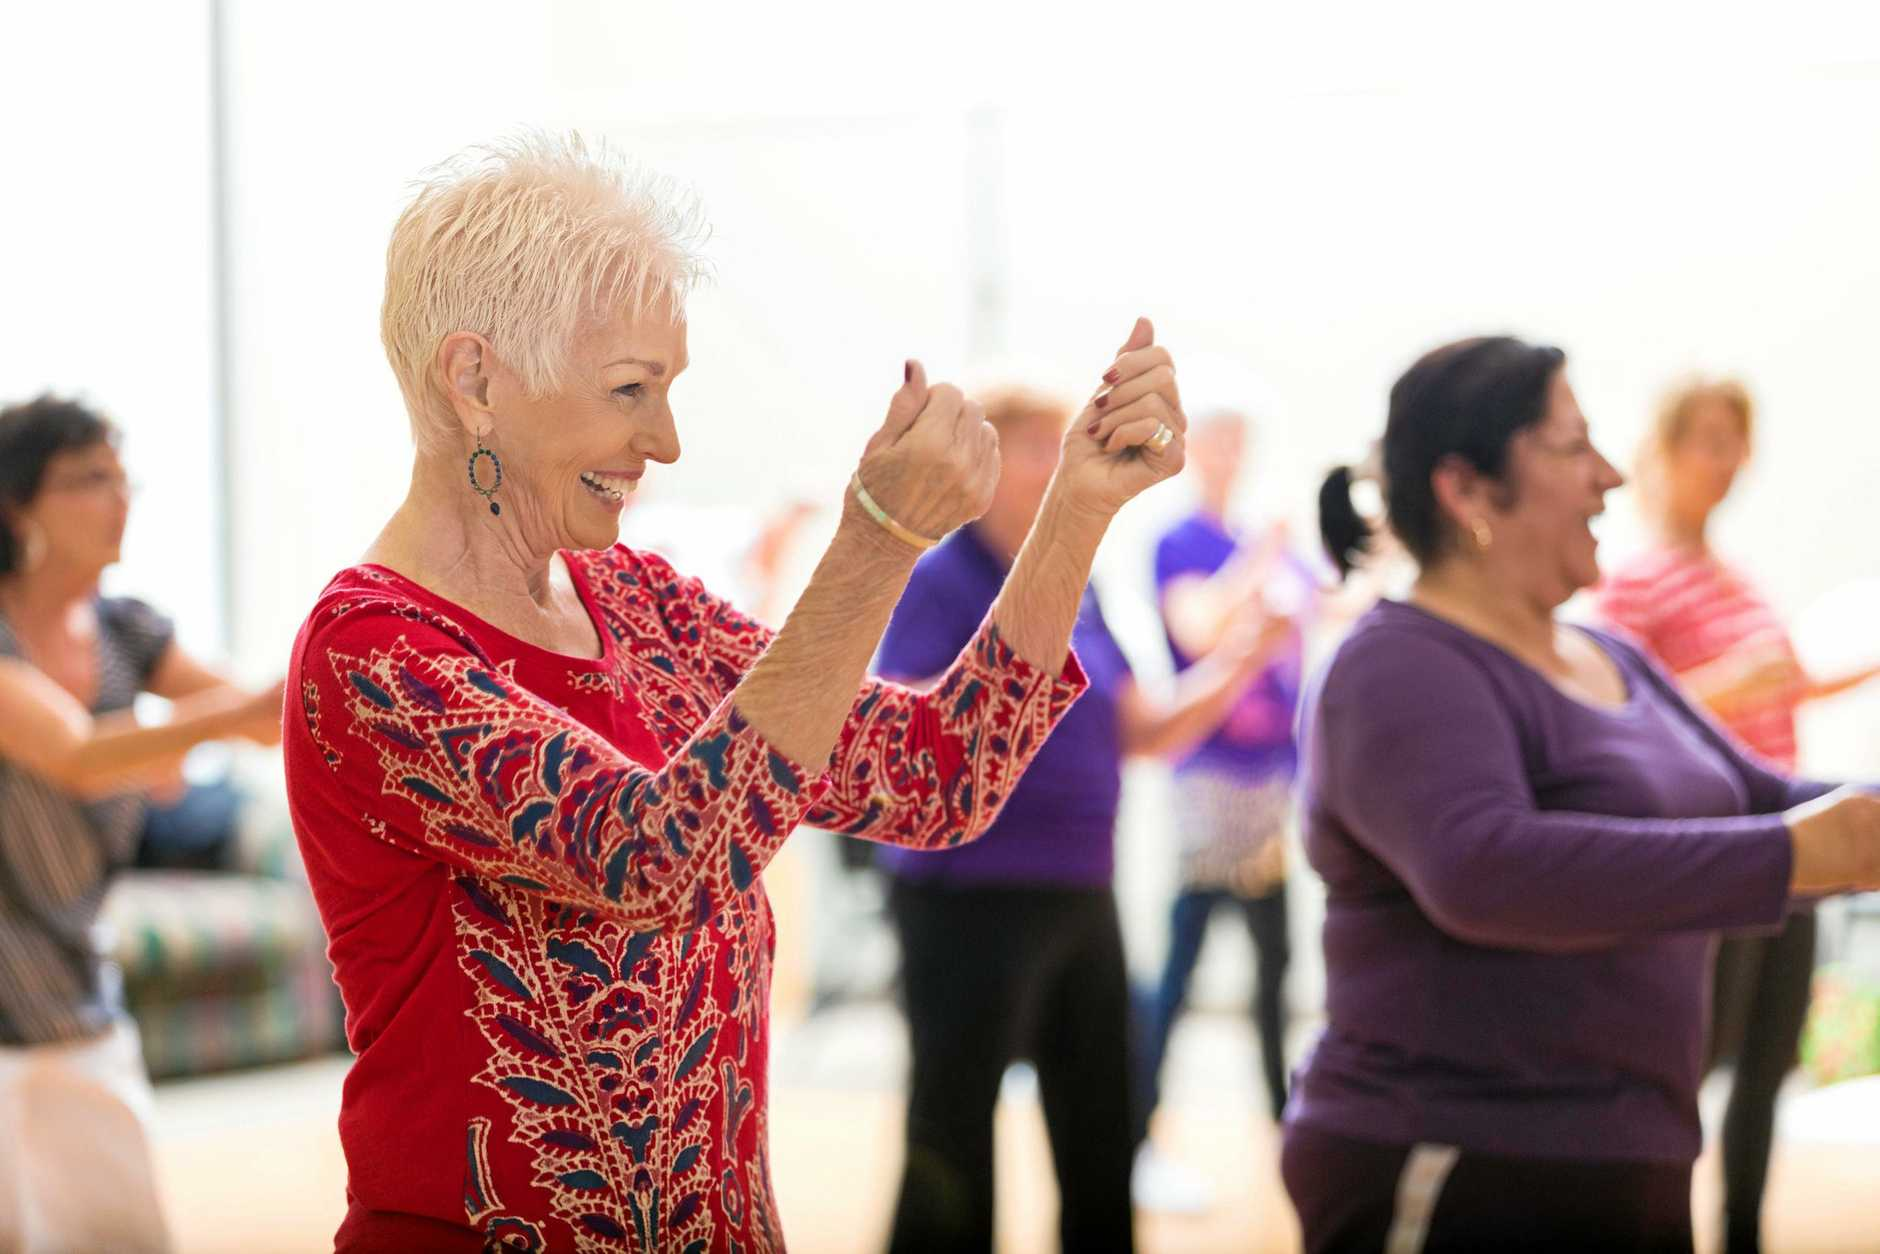 ENJOYMENT: Line dancing is fun and fitness for all ages.